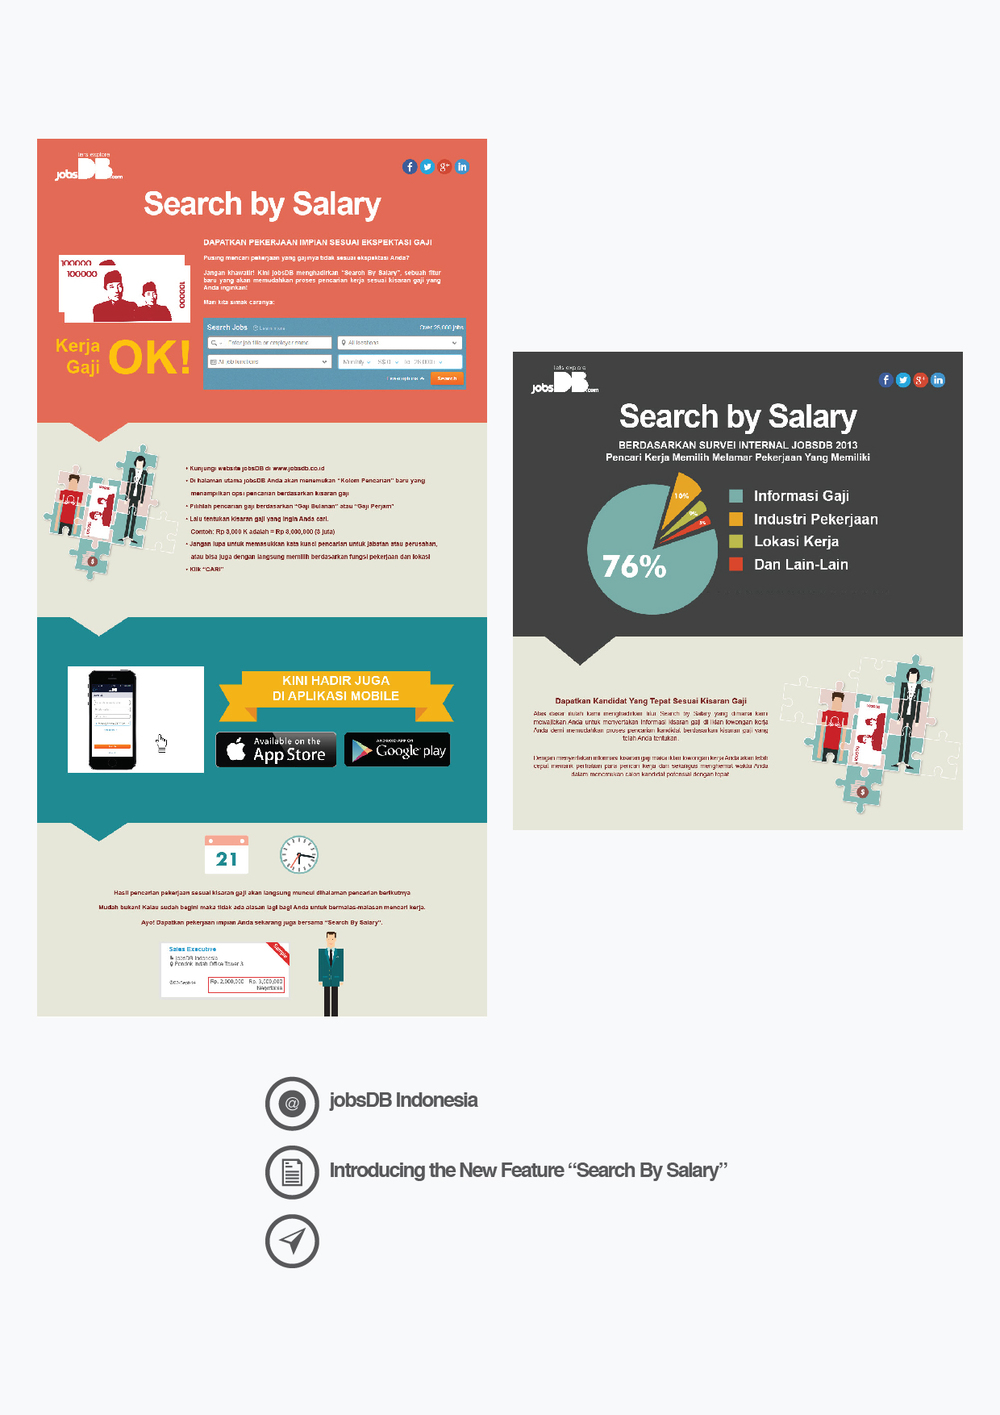 jobsDB Indonesia | Search by Salary